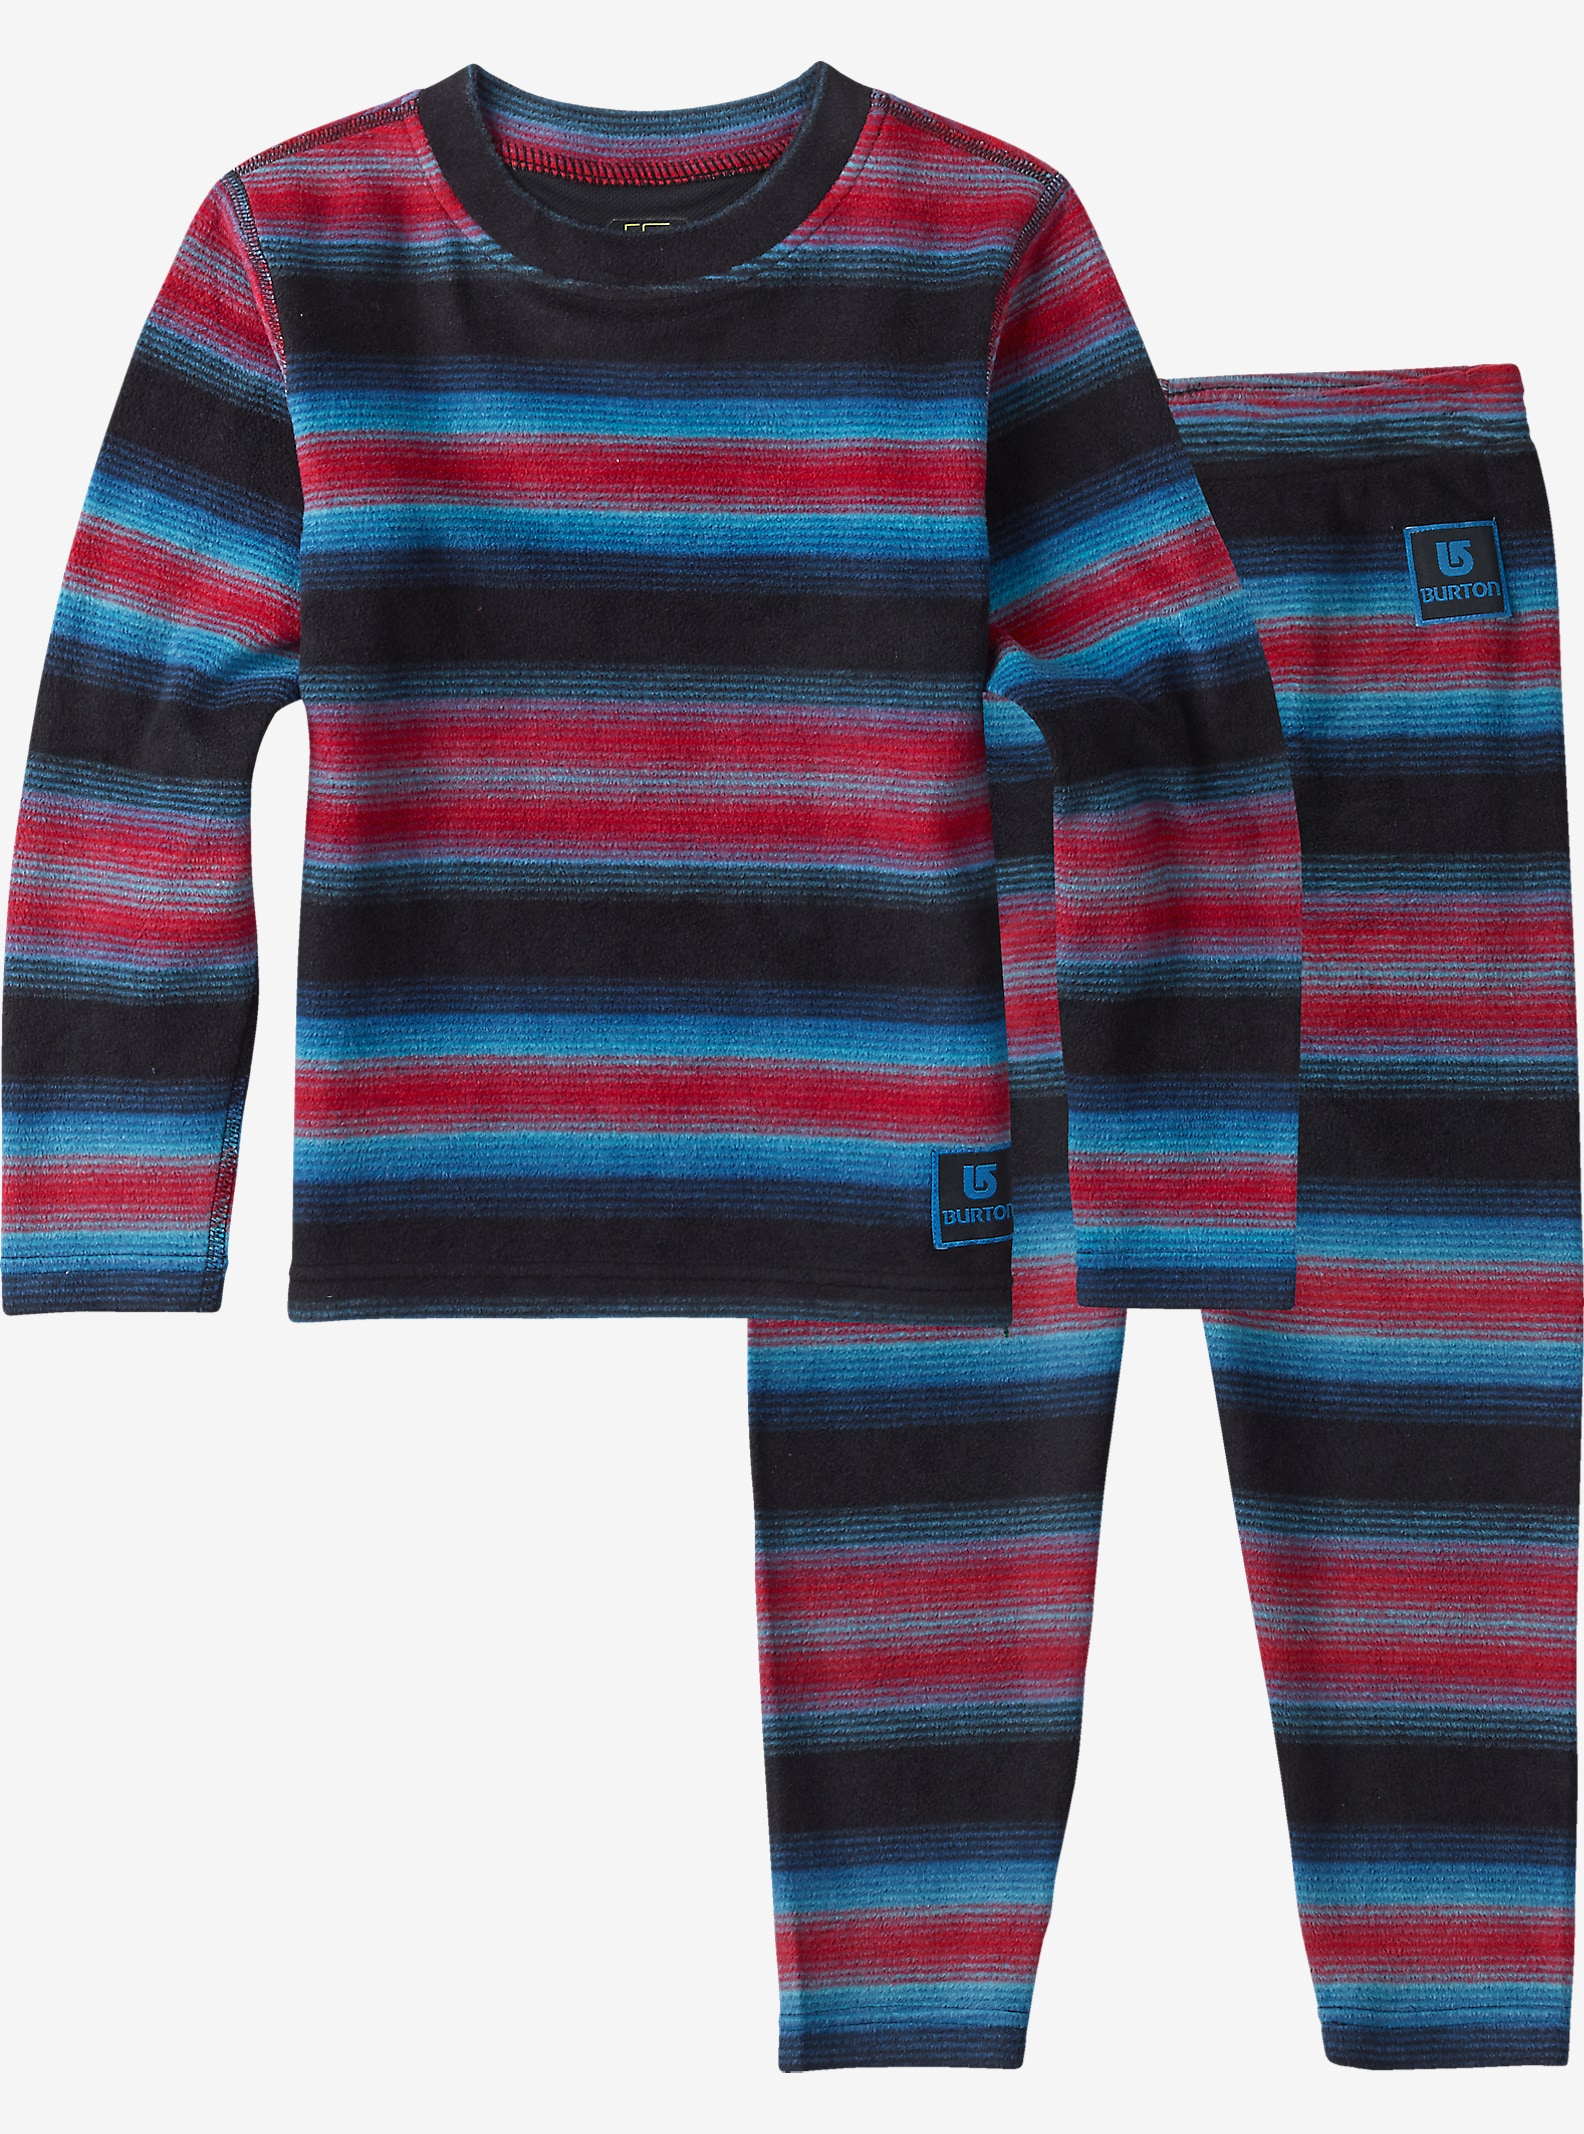 Burton Minishred Base Layer Fleece Set shown in Seaside Stripe